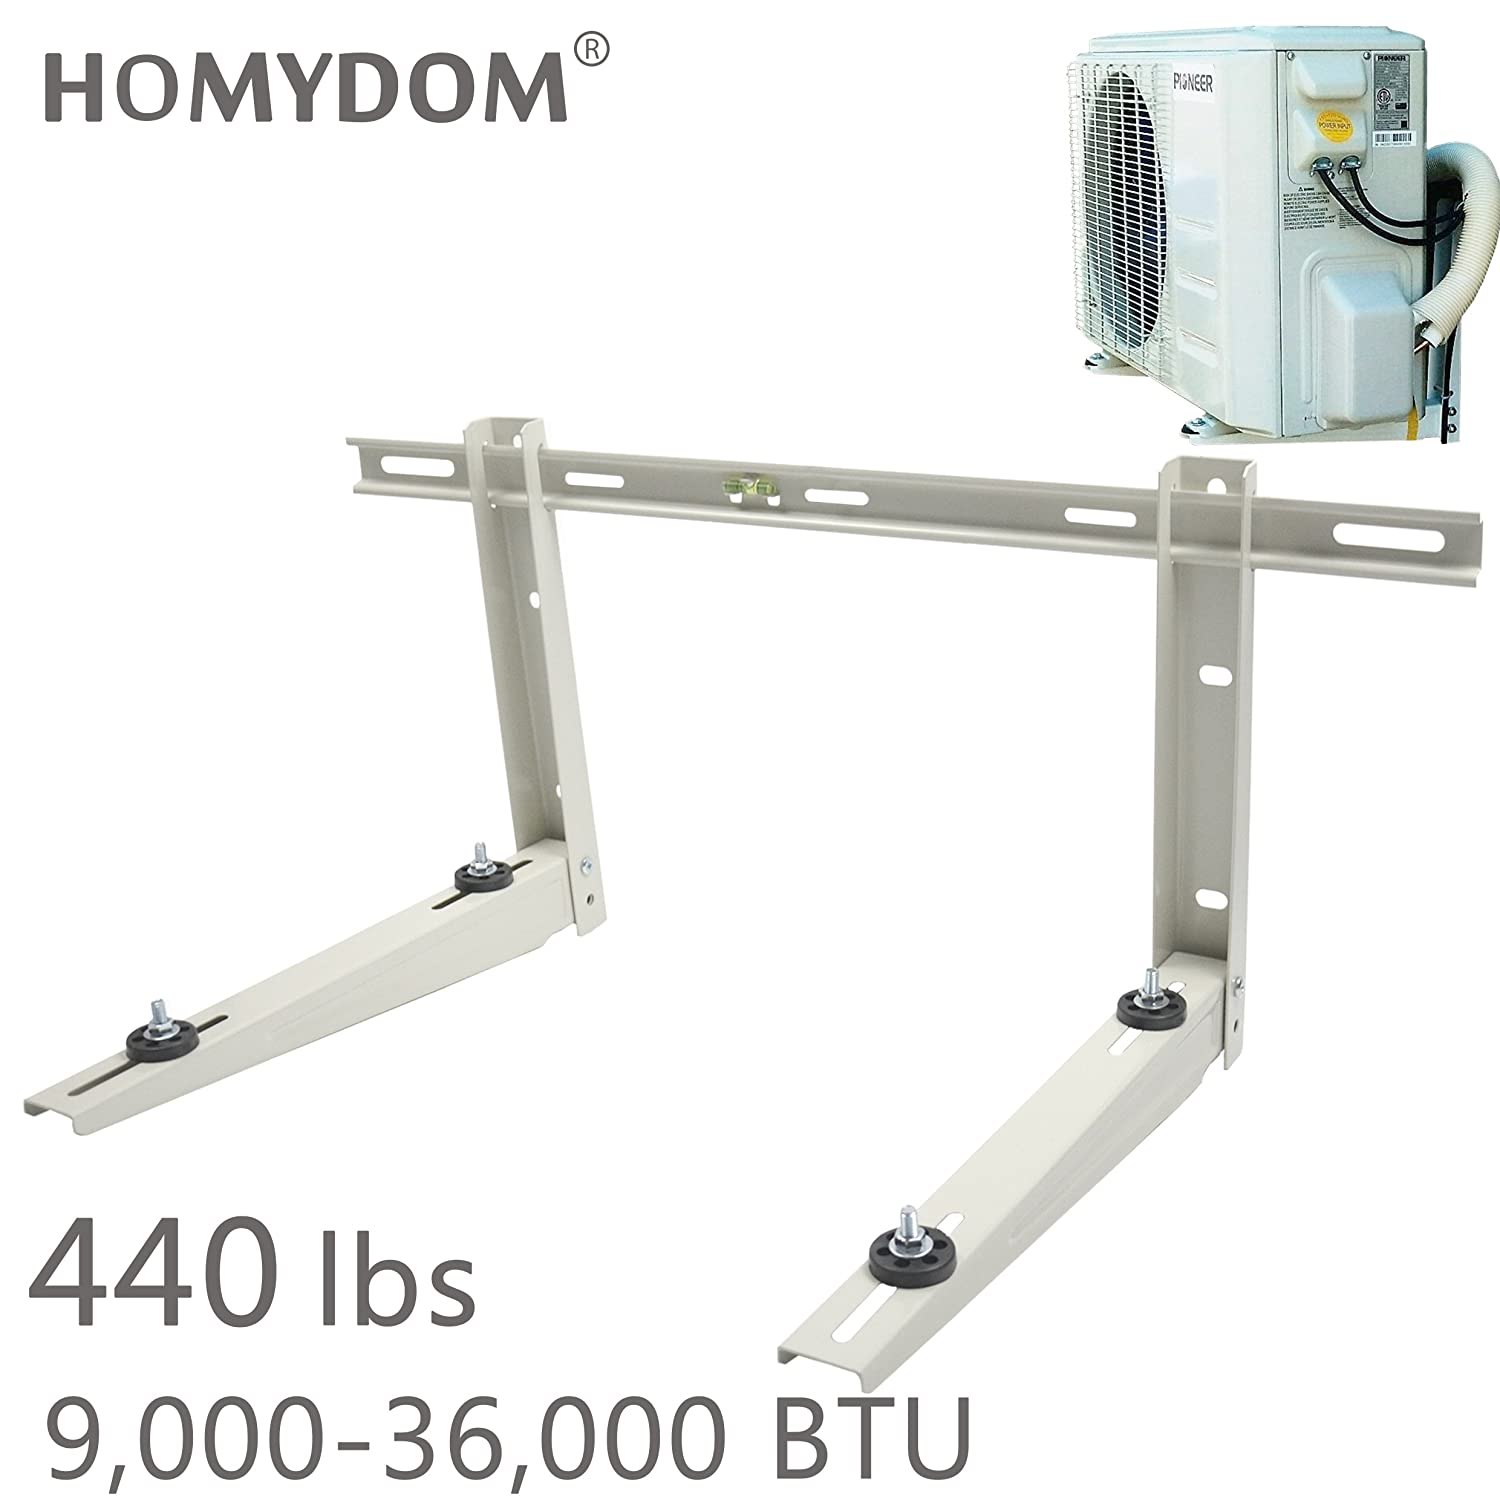 Homydom Mini Split Mounting Bracket for Ductless Air Conditioner,Universal,7000-18000 Btu Condenser